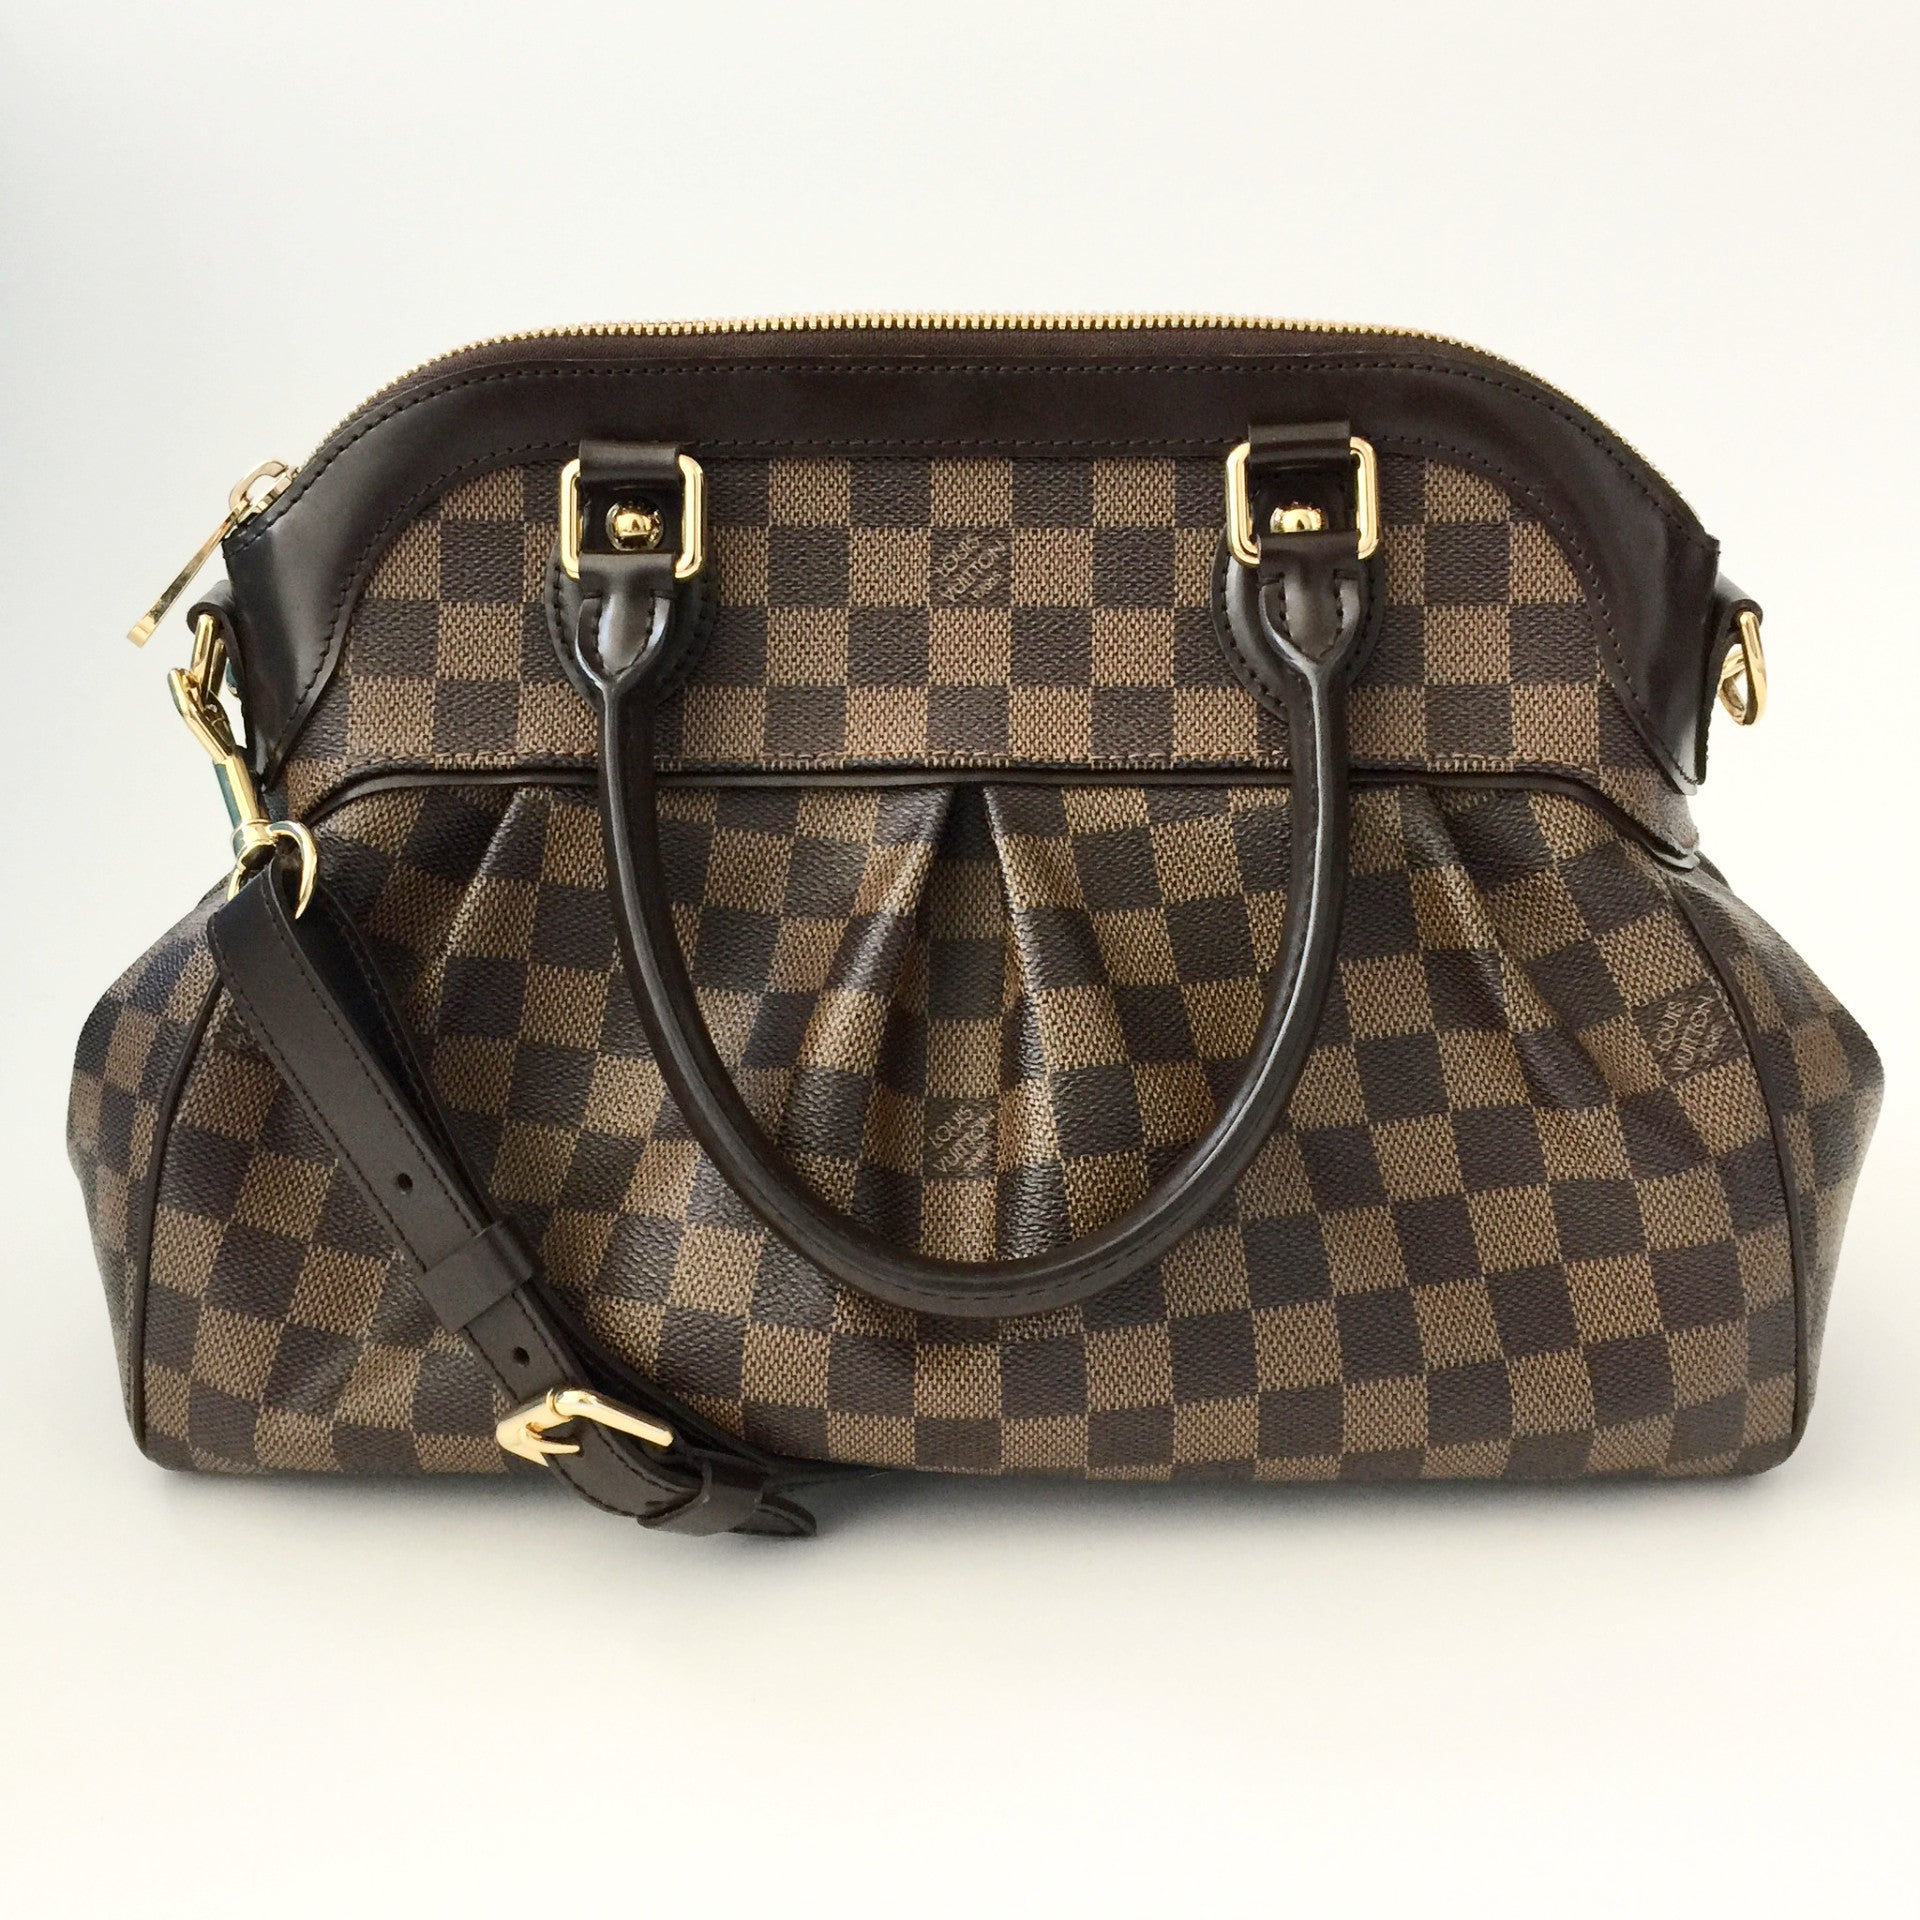 Authentic LOUIS VUITTON Trevi PM